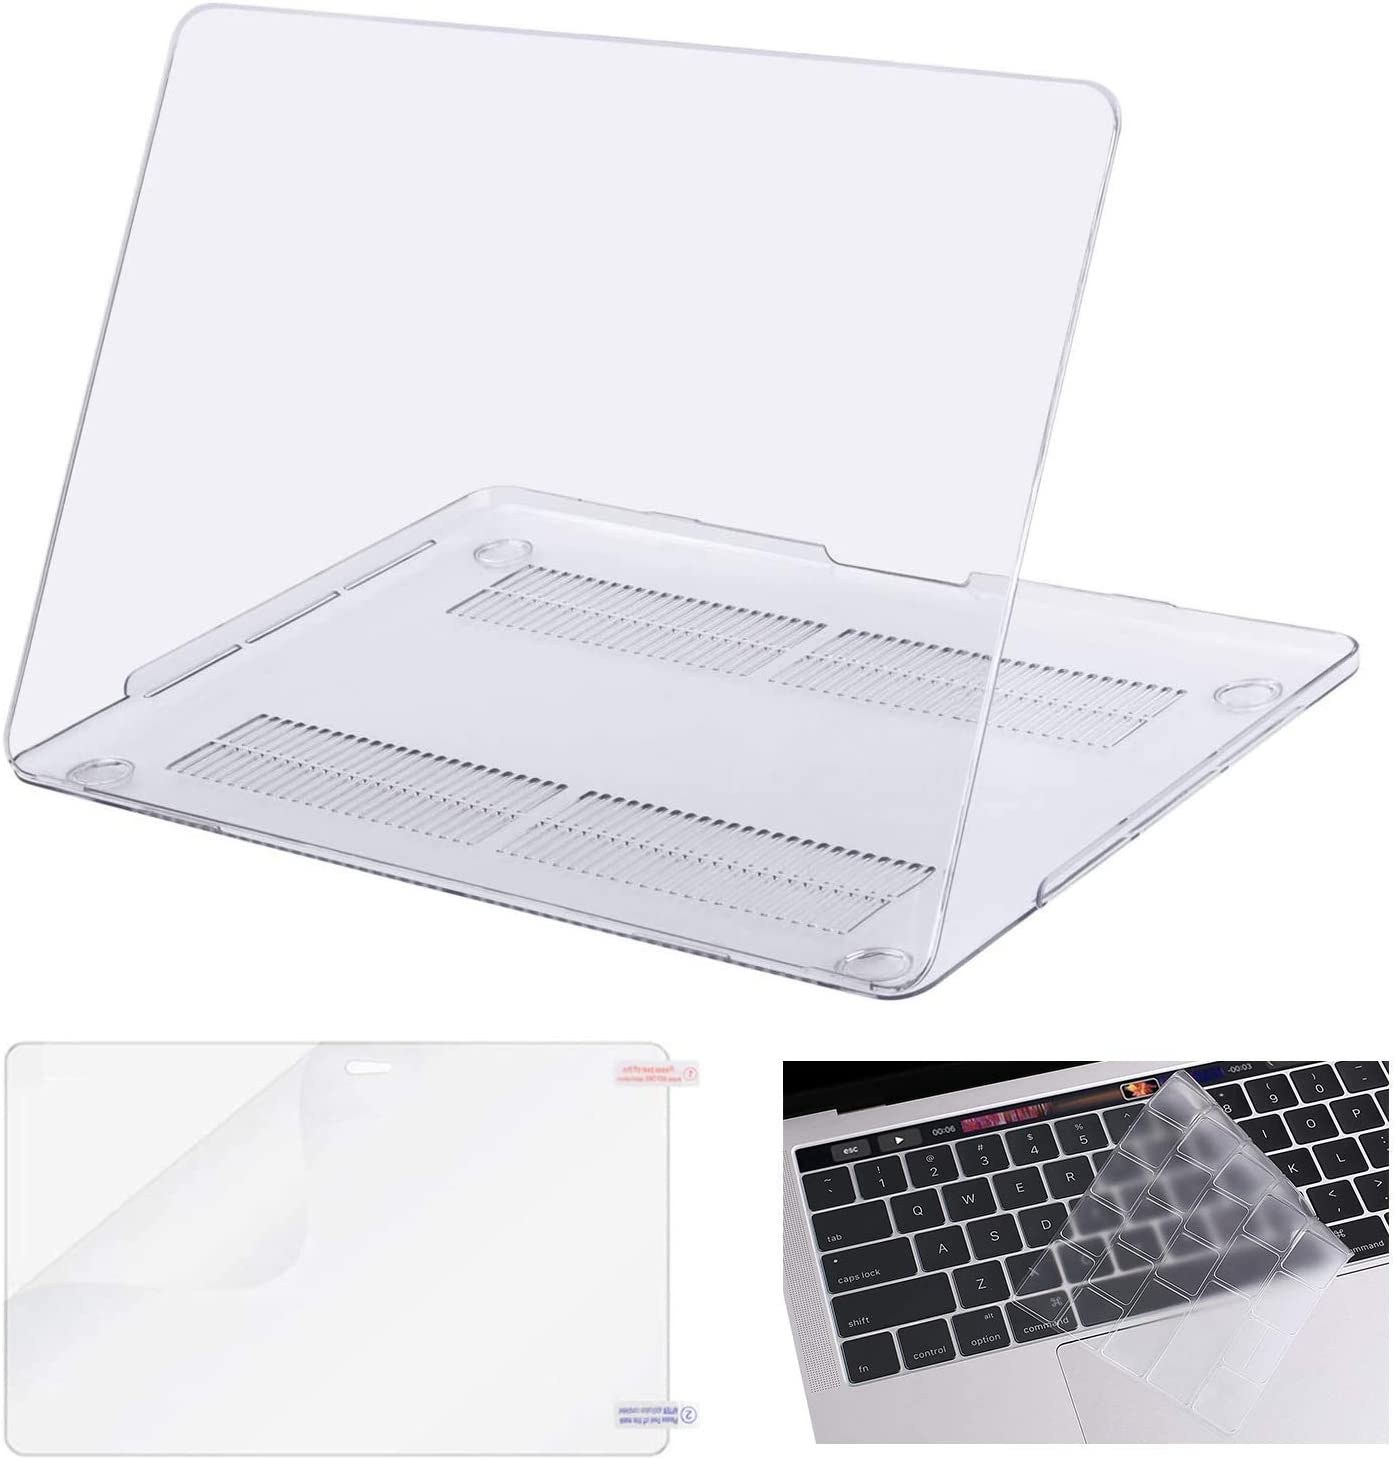 MOSISO Plastic Hard Shell Case & Ultra Thin TPU Clear Keyboard Cover Compatible with MacBook Pro 13 inch 2019 2018 2017 2016 Release A2159 A1989 A1706 A1708